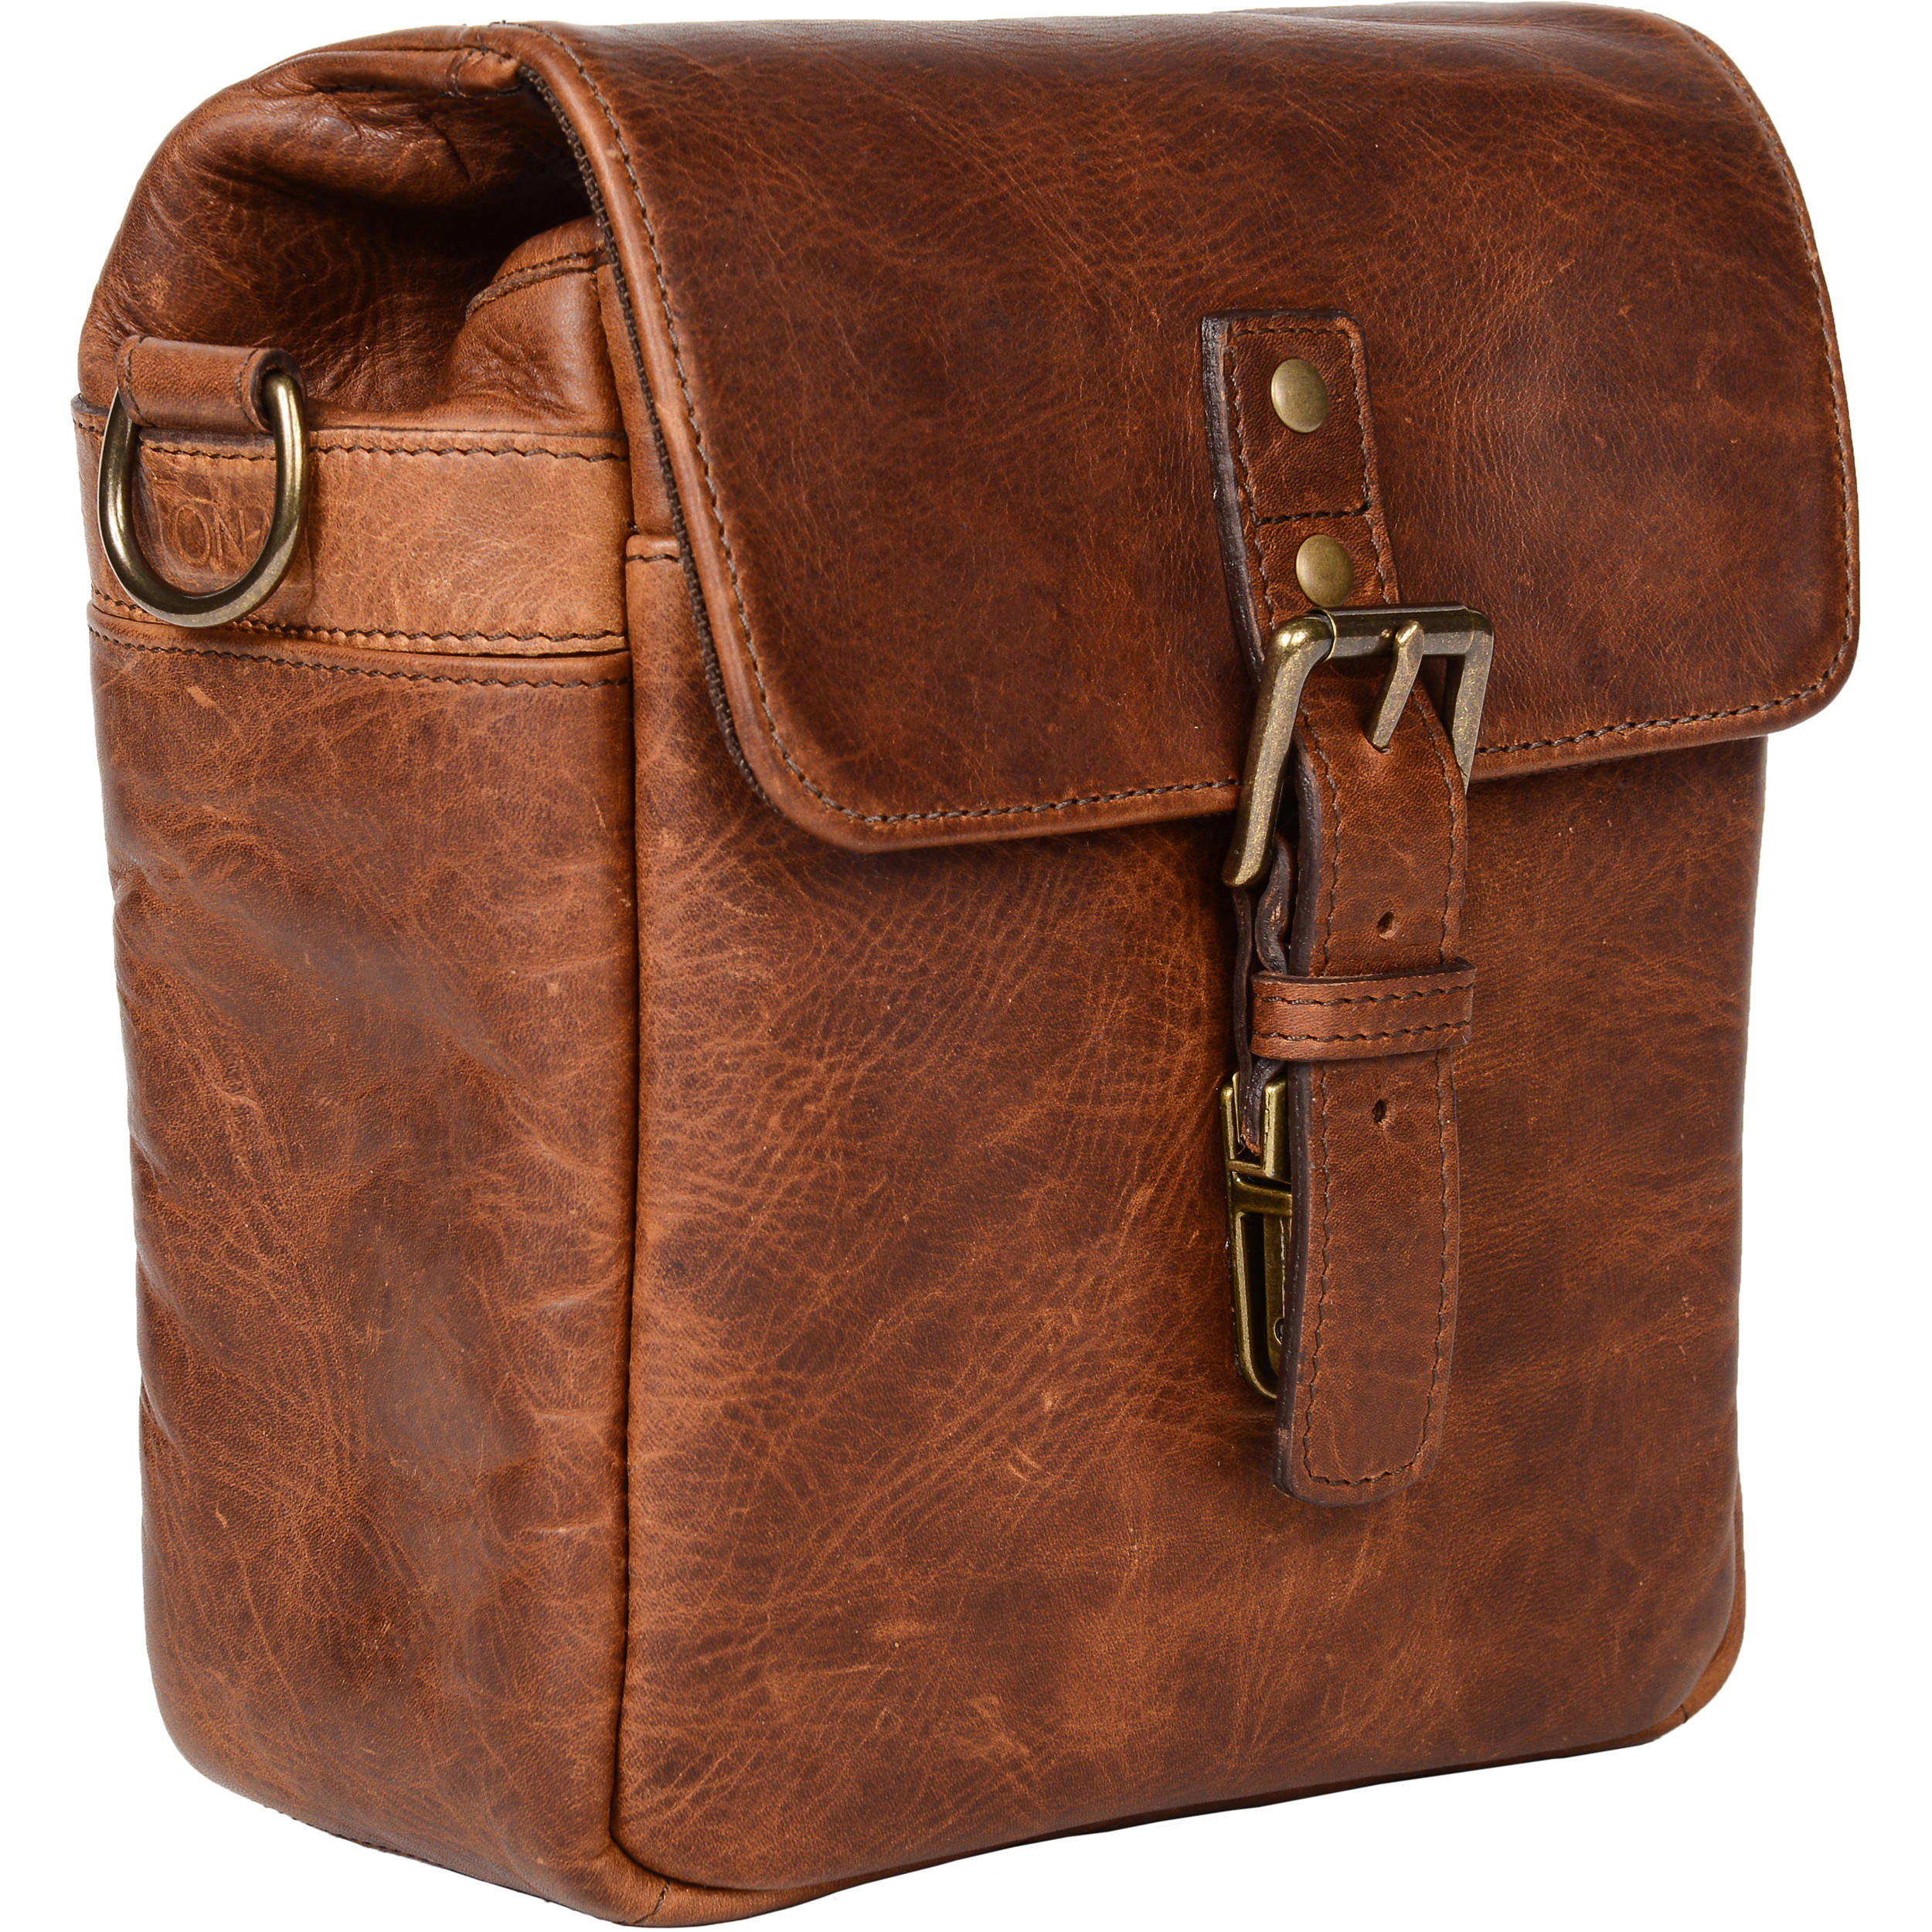 ONA Bond Street Leather Camera Bag (Antique Cognac) ONA5-064LBR